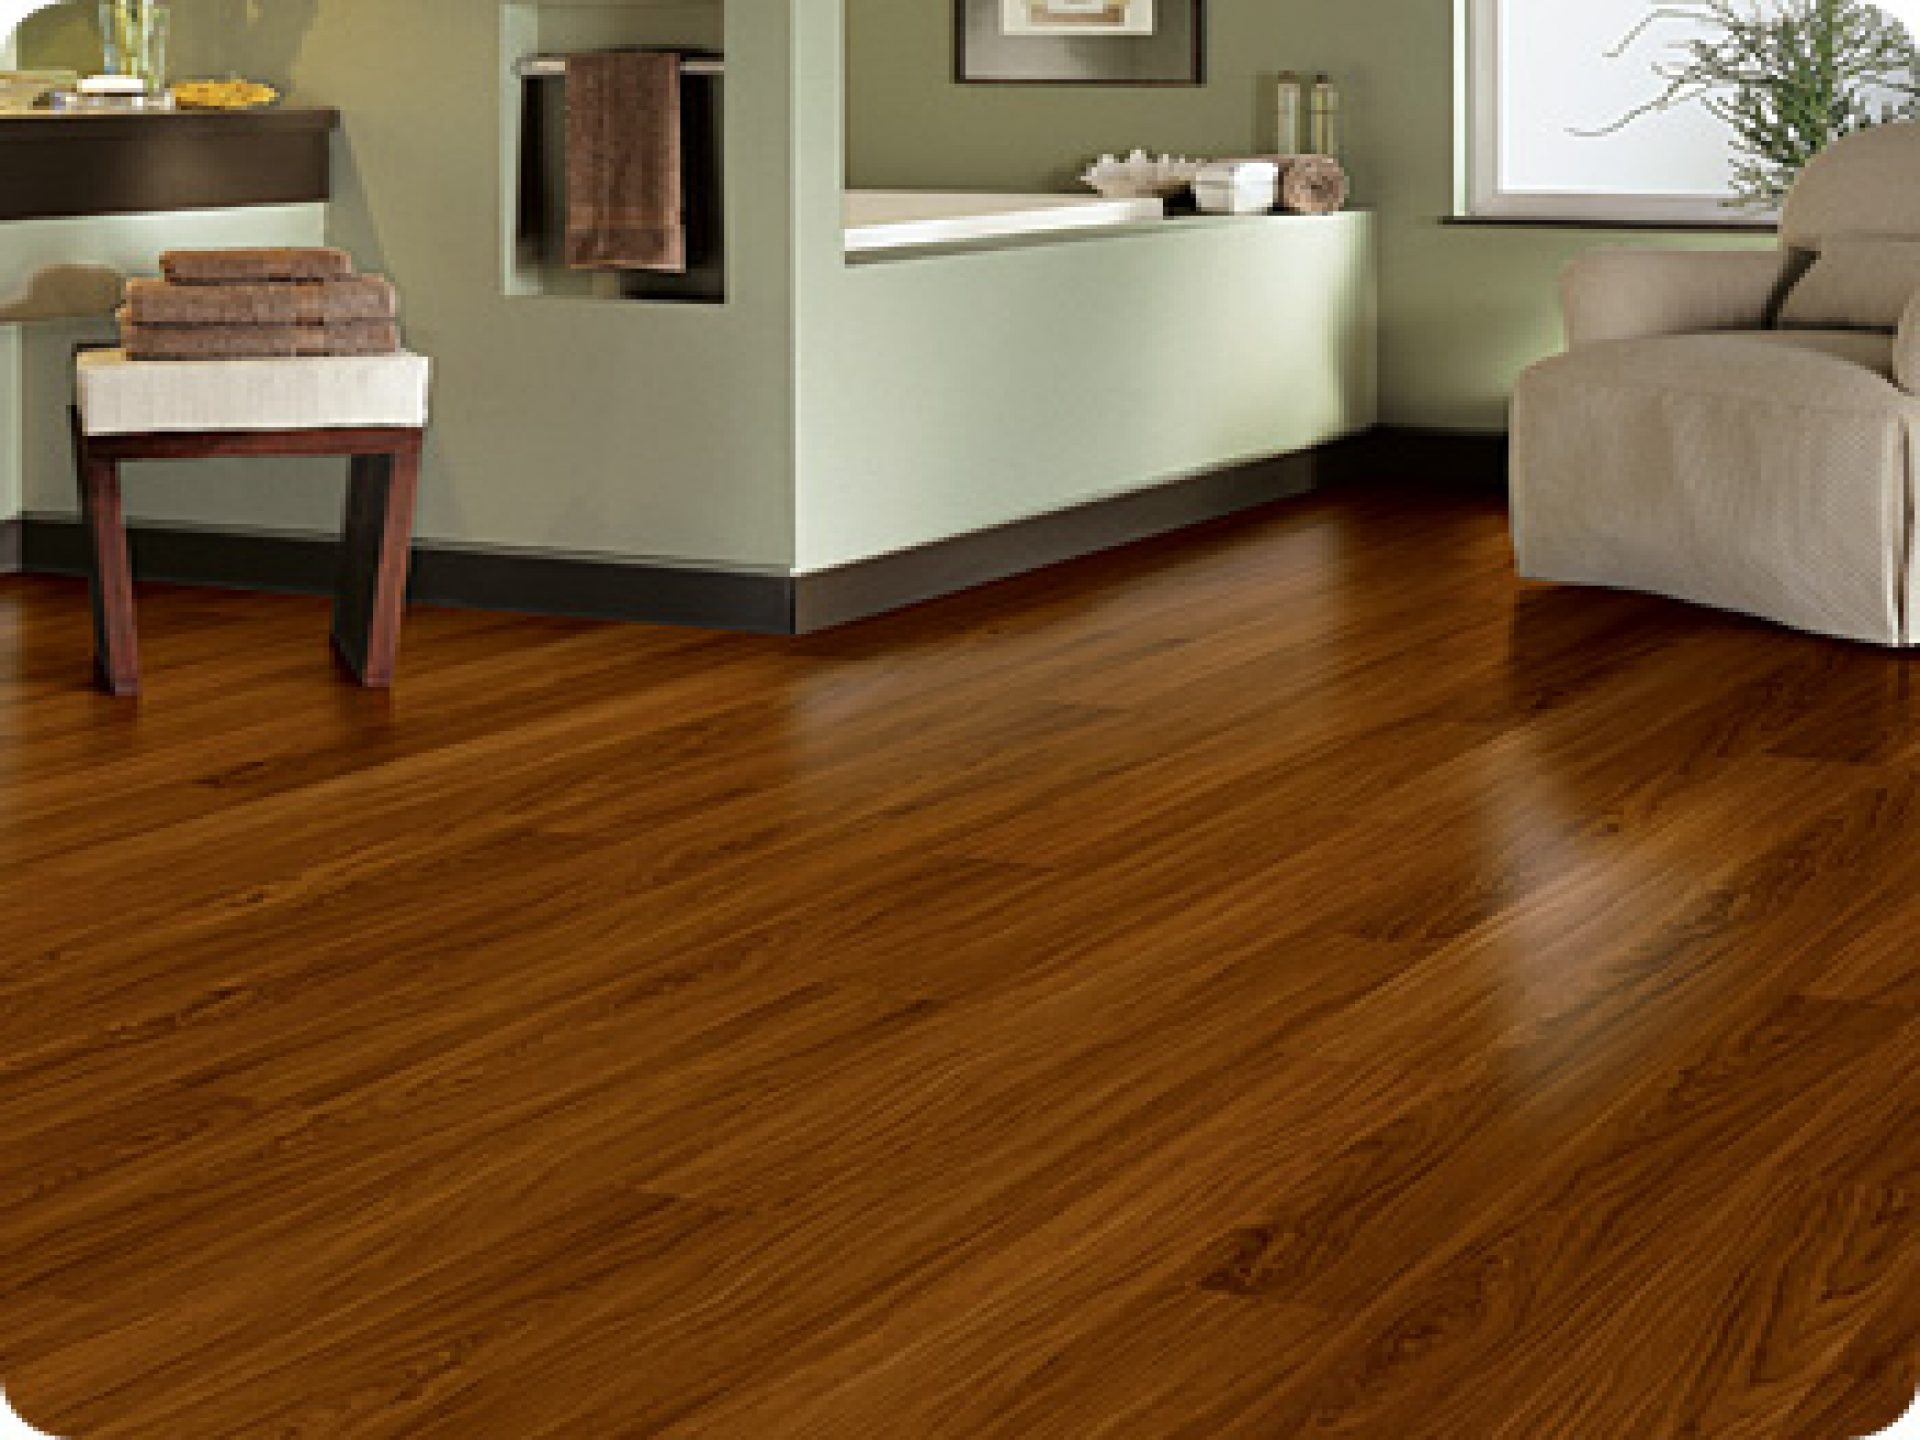 Buy high quality pvc flooring in dubai abu dhabi acroos for Pvc wood flooring